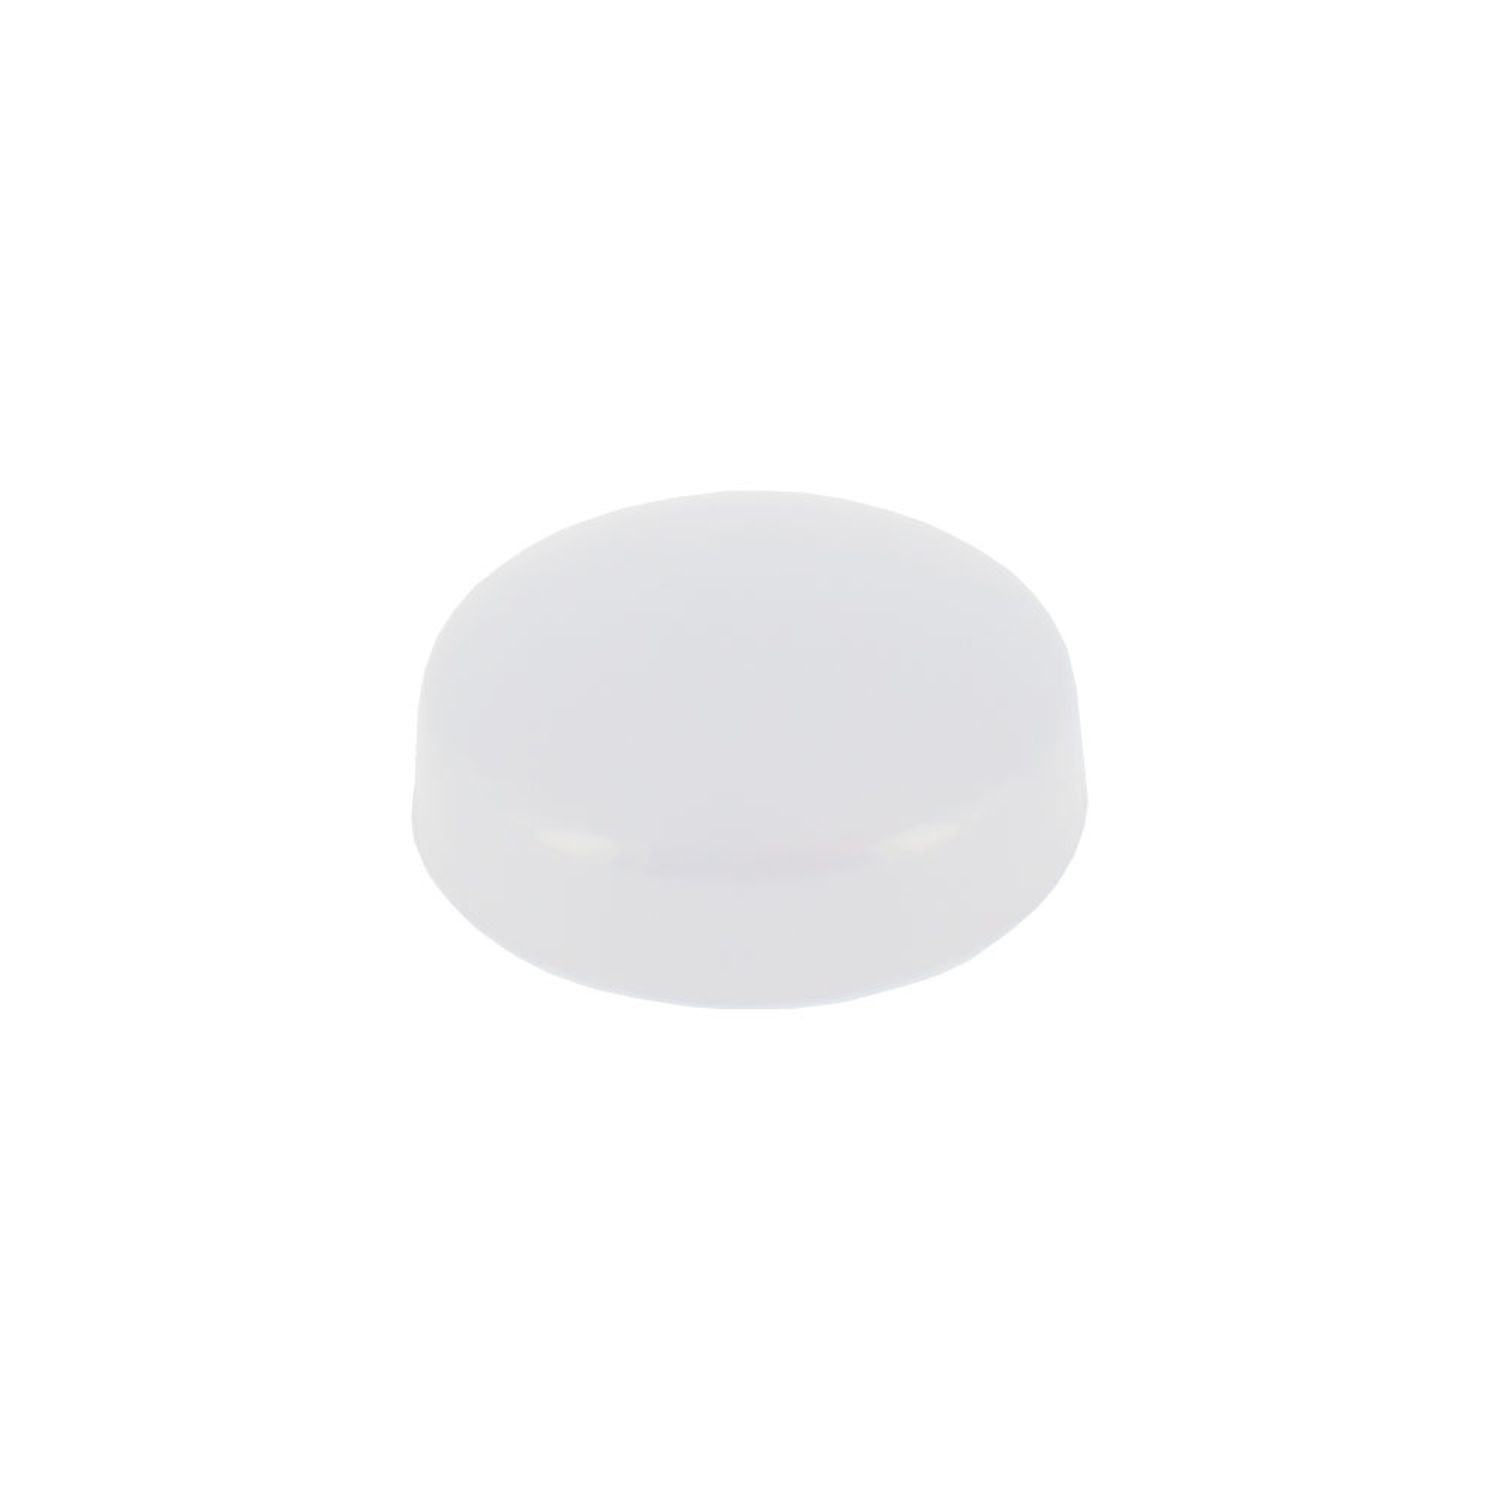 ".700"" Diameter White Polypropylene Pop-On Scew Cover"